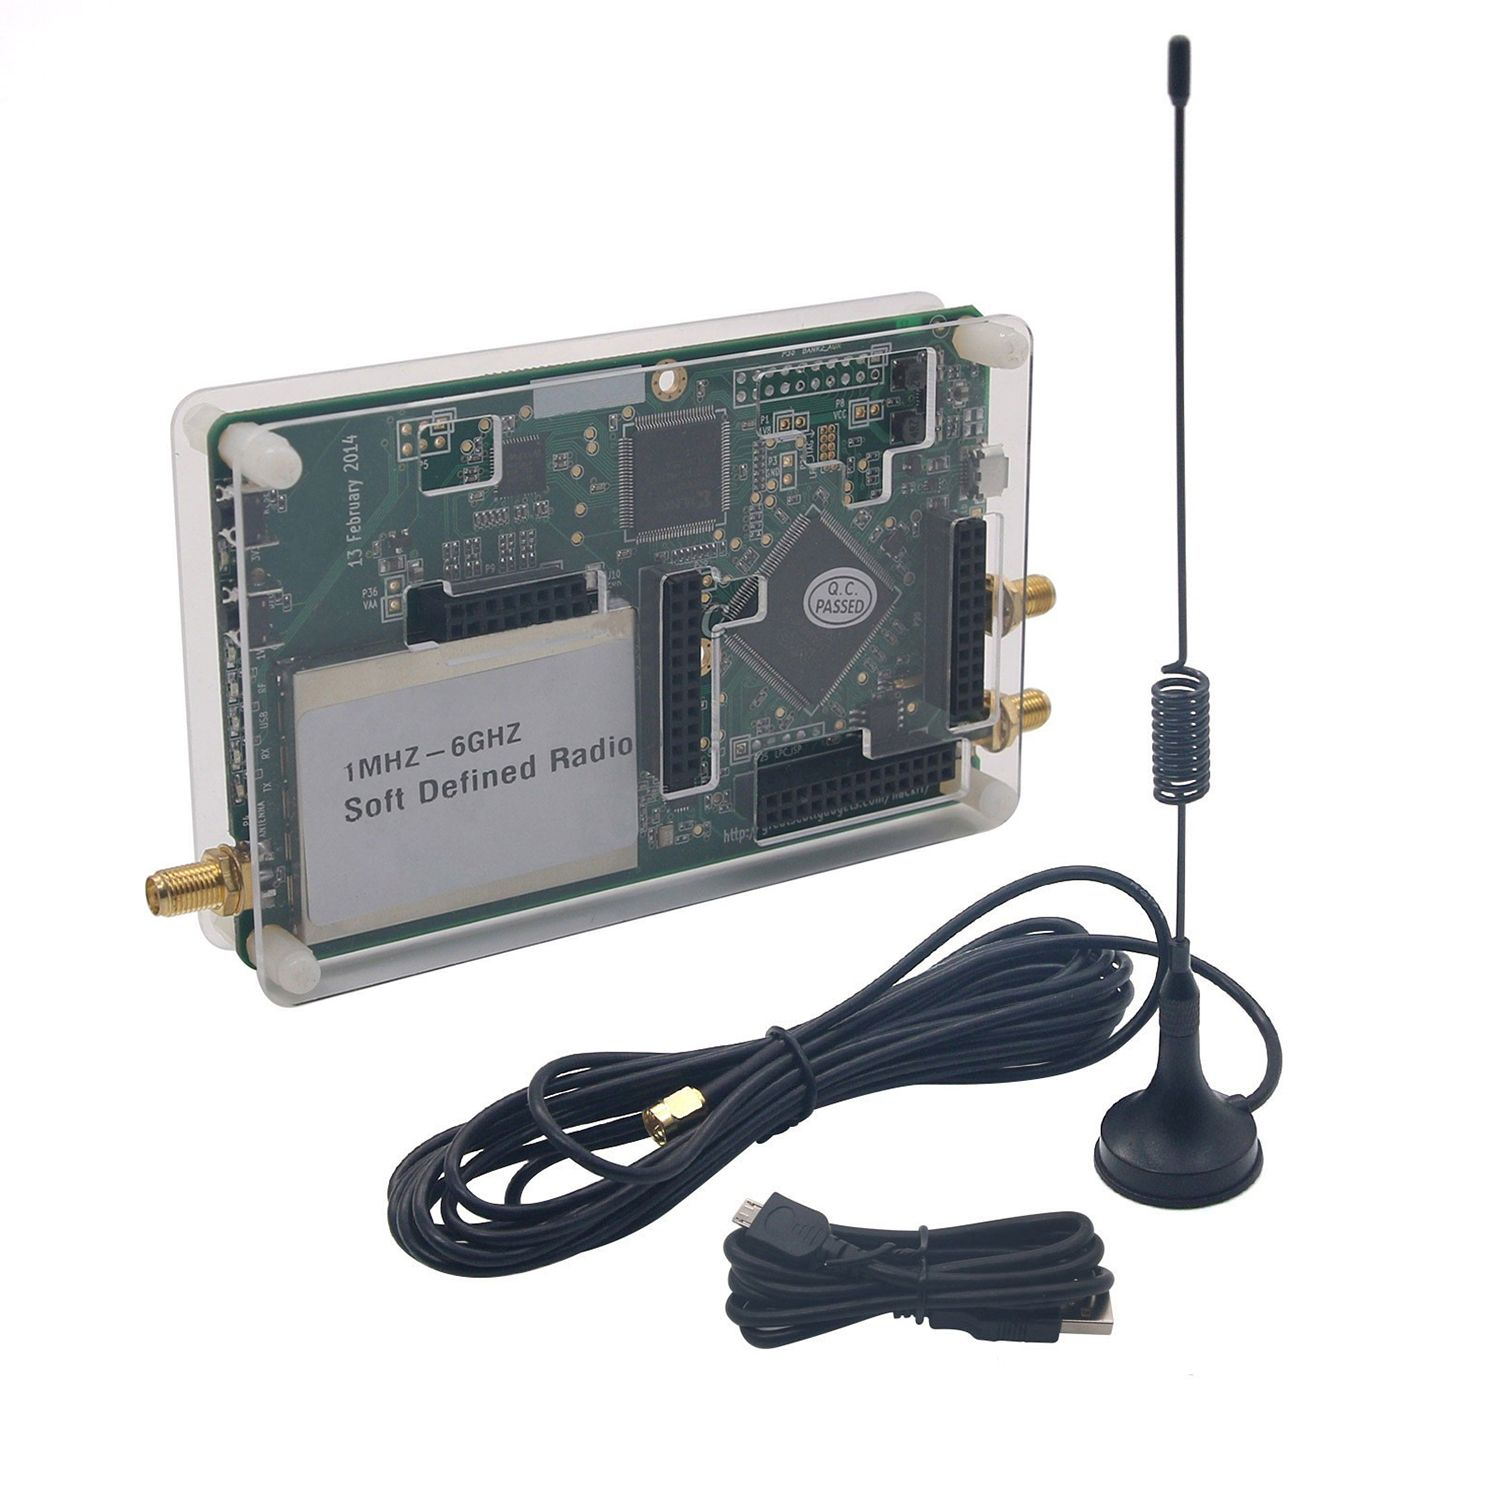 1MHz-6GHz SDR Platform Software Defined Radio Development Board 2018 hackrf one rtl 1mhz to 6 ghz 8bit quadrature rf system software defined radio sdr communication experimental platform